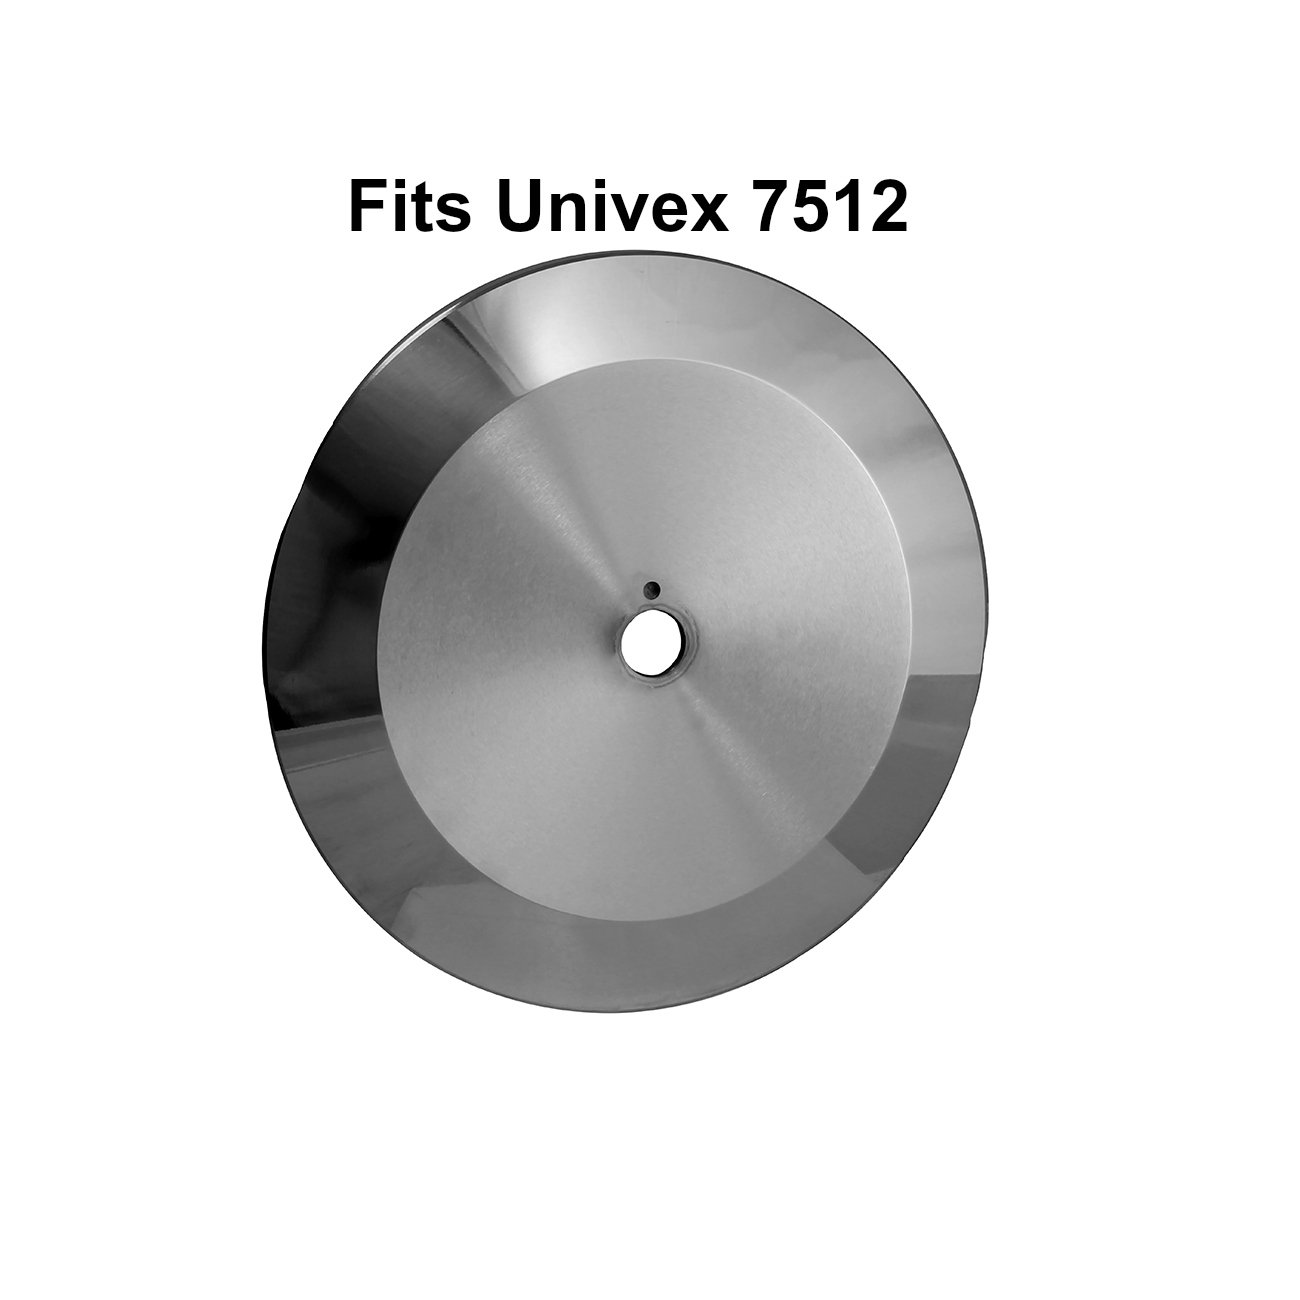 Replacement Blade for Univex / Intedge Meat Deli Slicer Fits 7512 Machine Made in Italy